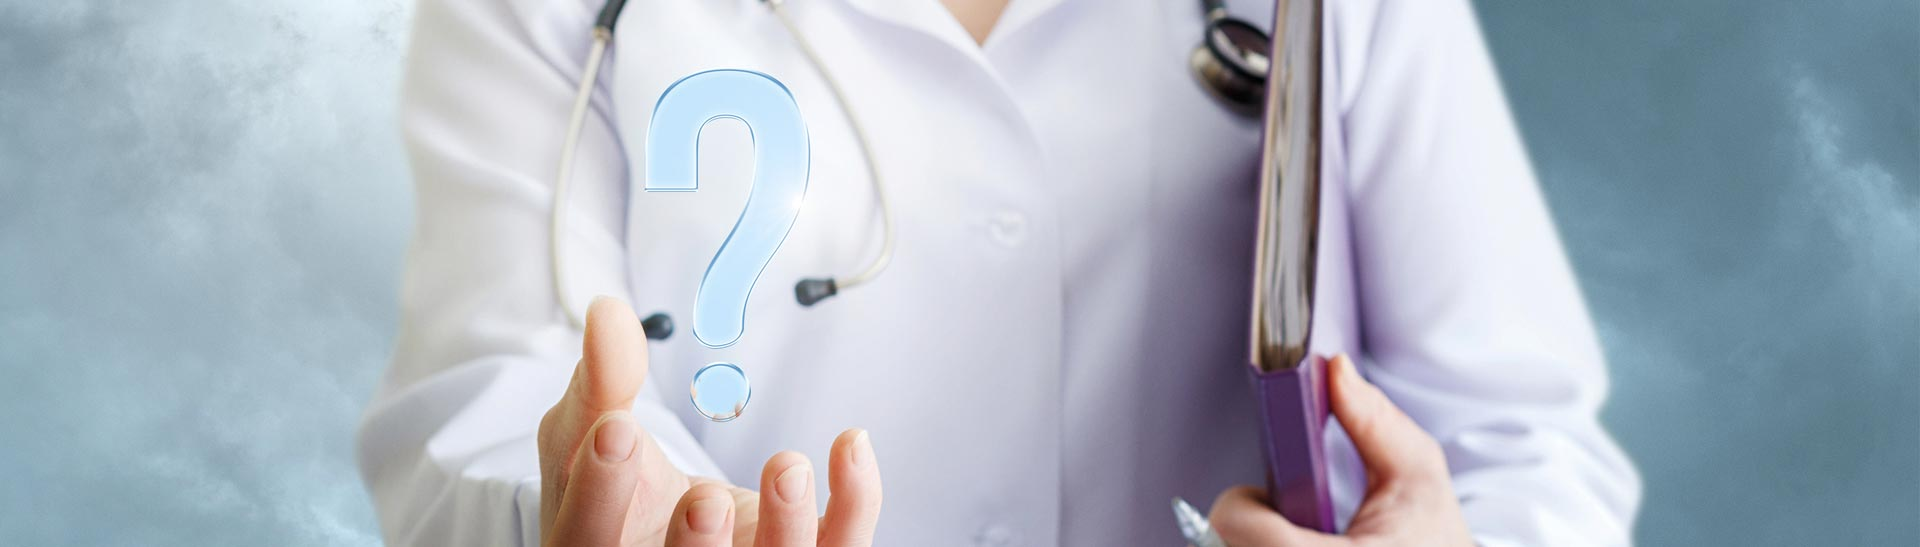 Questioning Medical Care